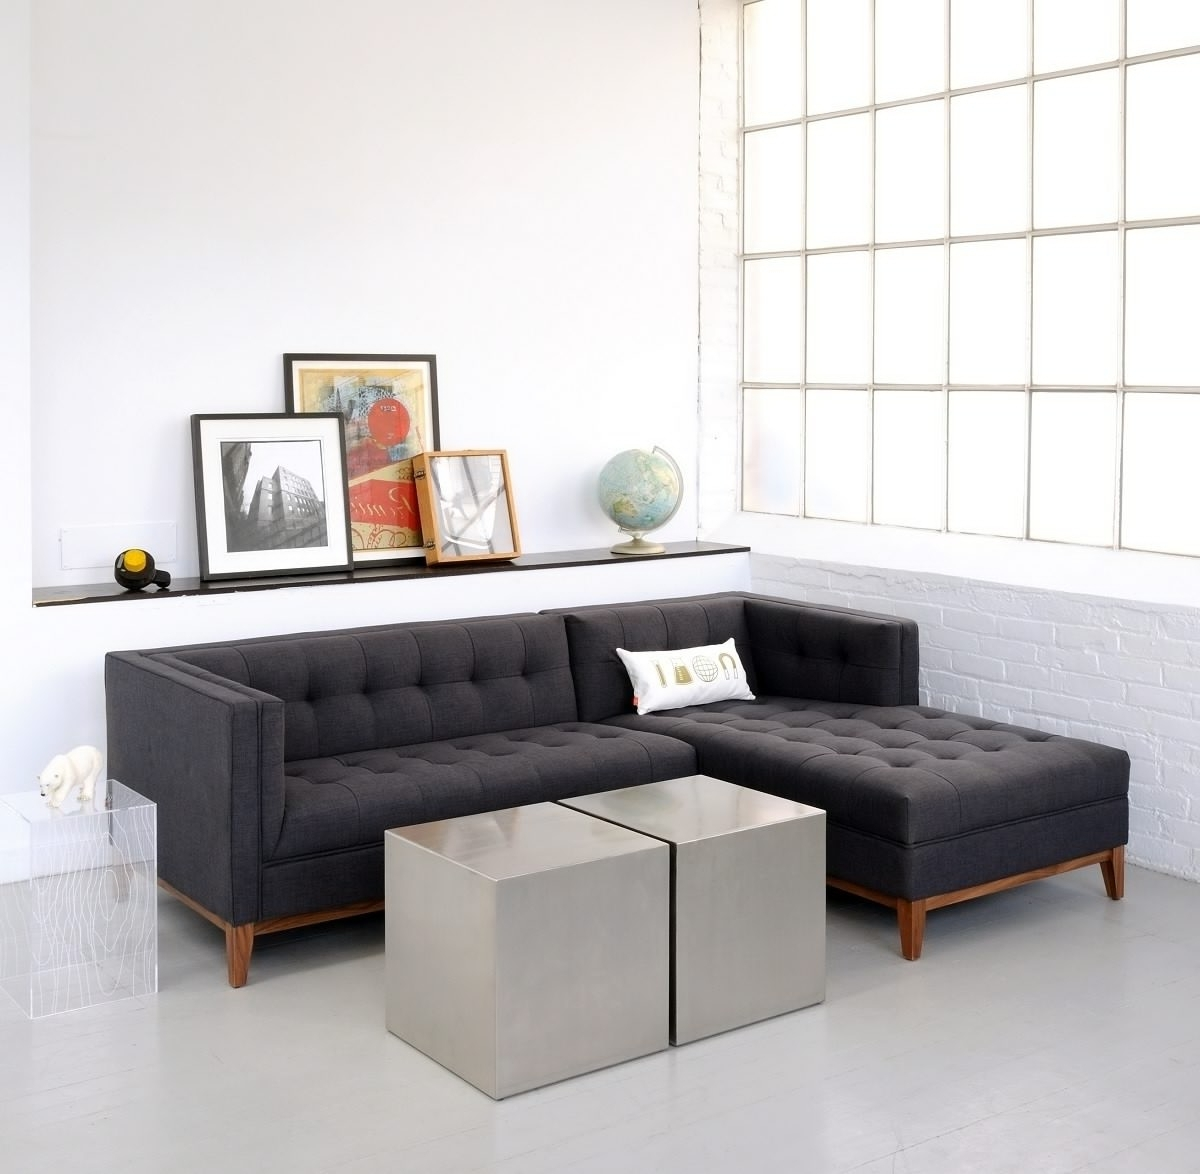 Sectional Sofas For Condos Intended For Fashionable Sectional Sofa Design: Apartment Size Sectional Sofa Bed Chaise (View 18 of 20)